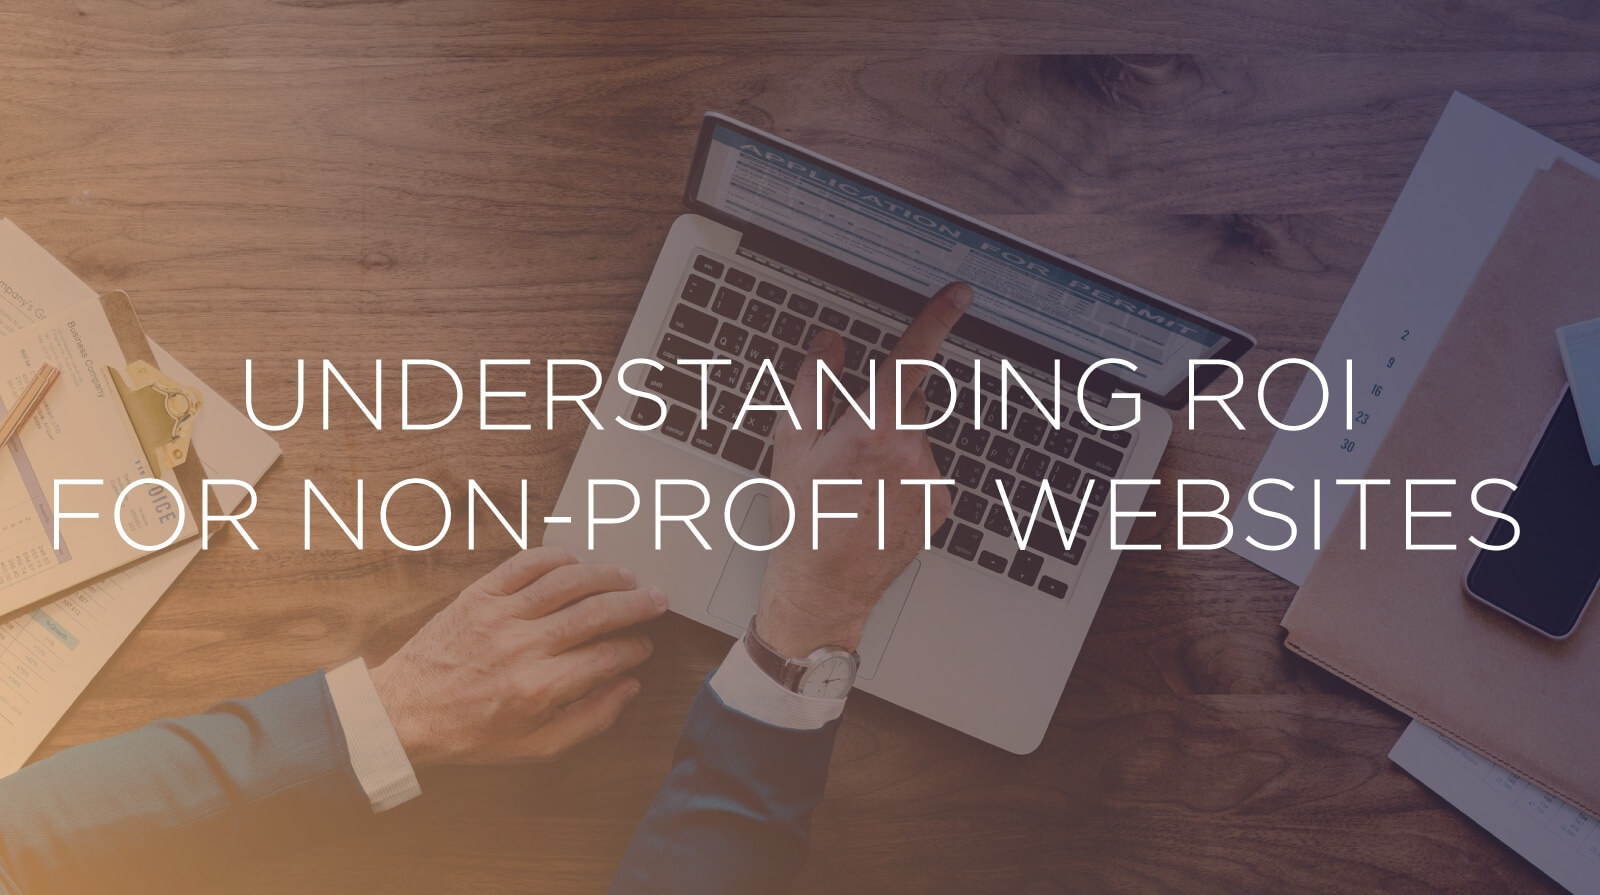 Understanding ROI for Non-Profit Websites